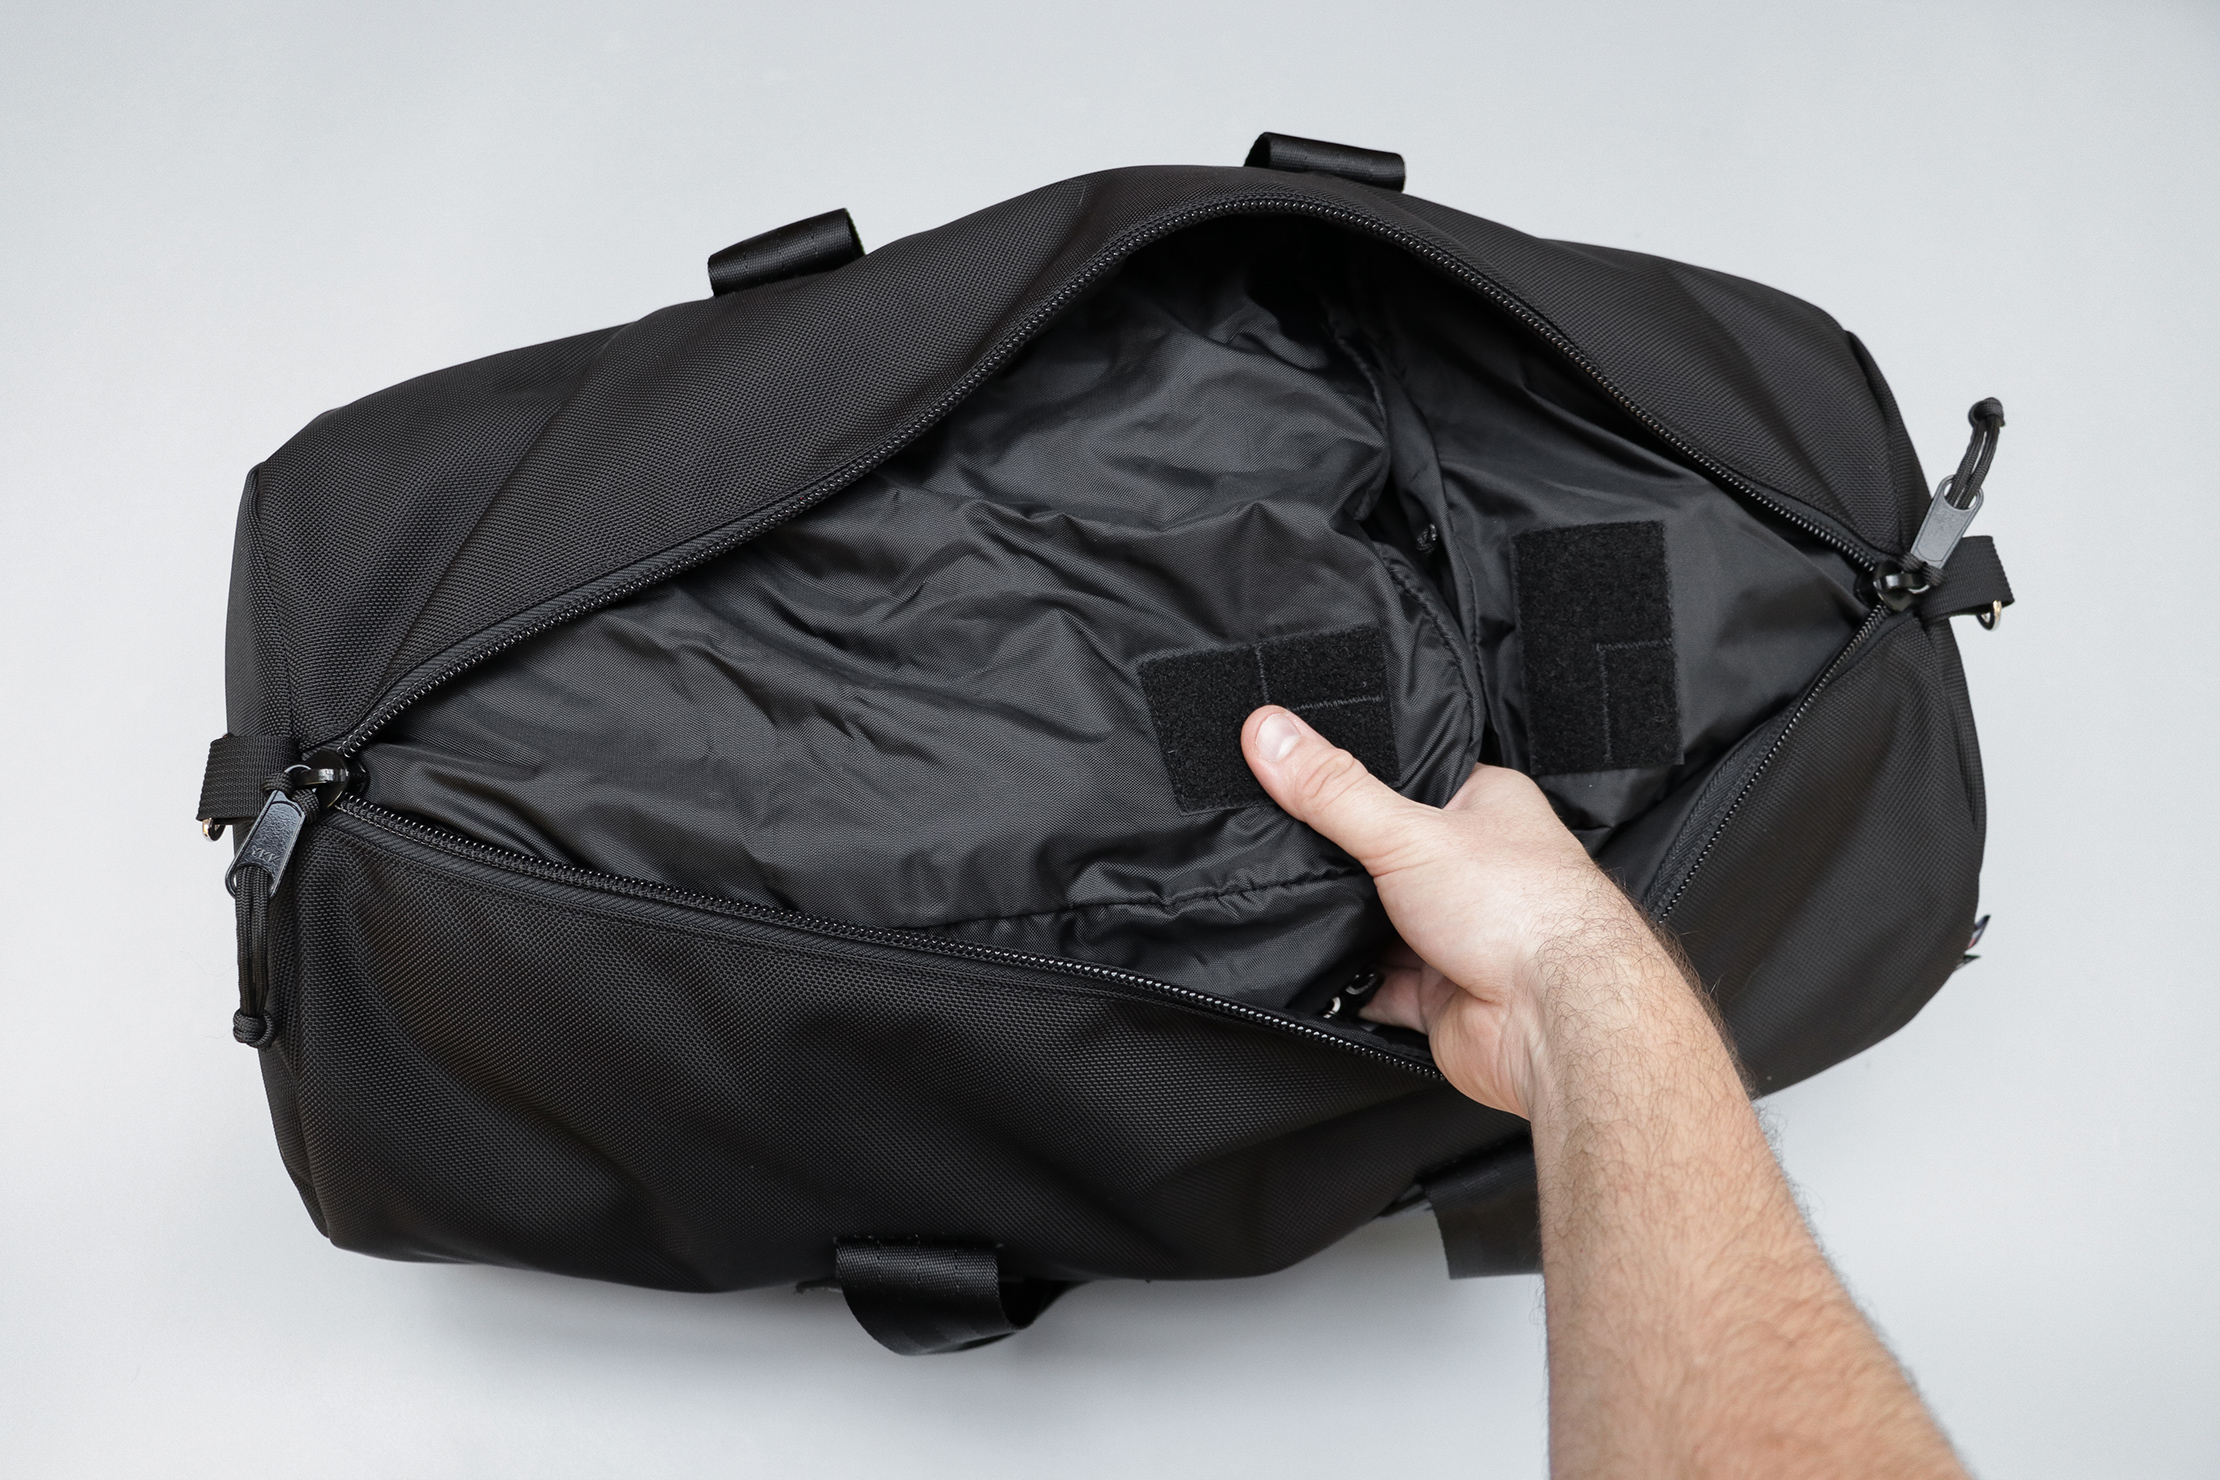 GORUCK Packing Cubes Inside A Duffle